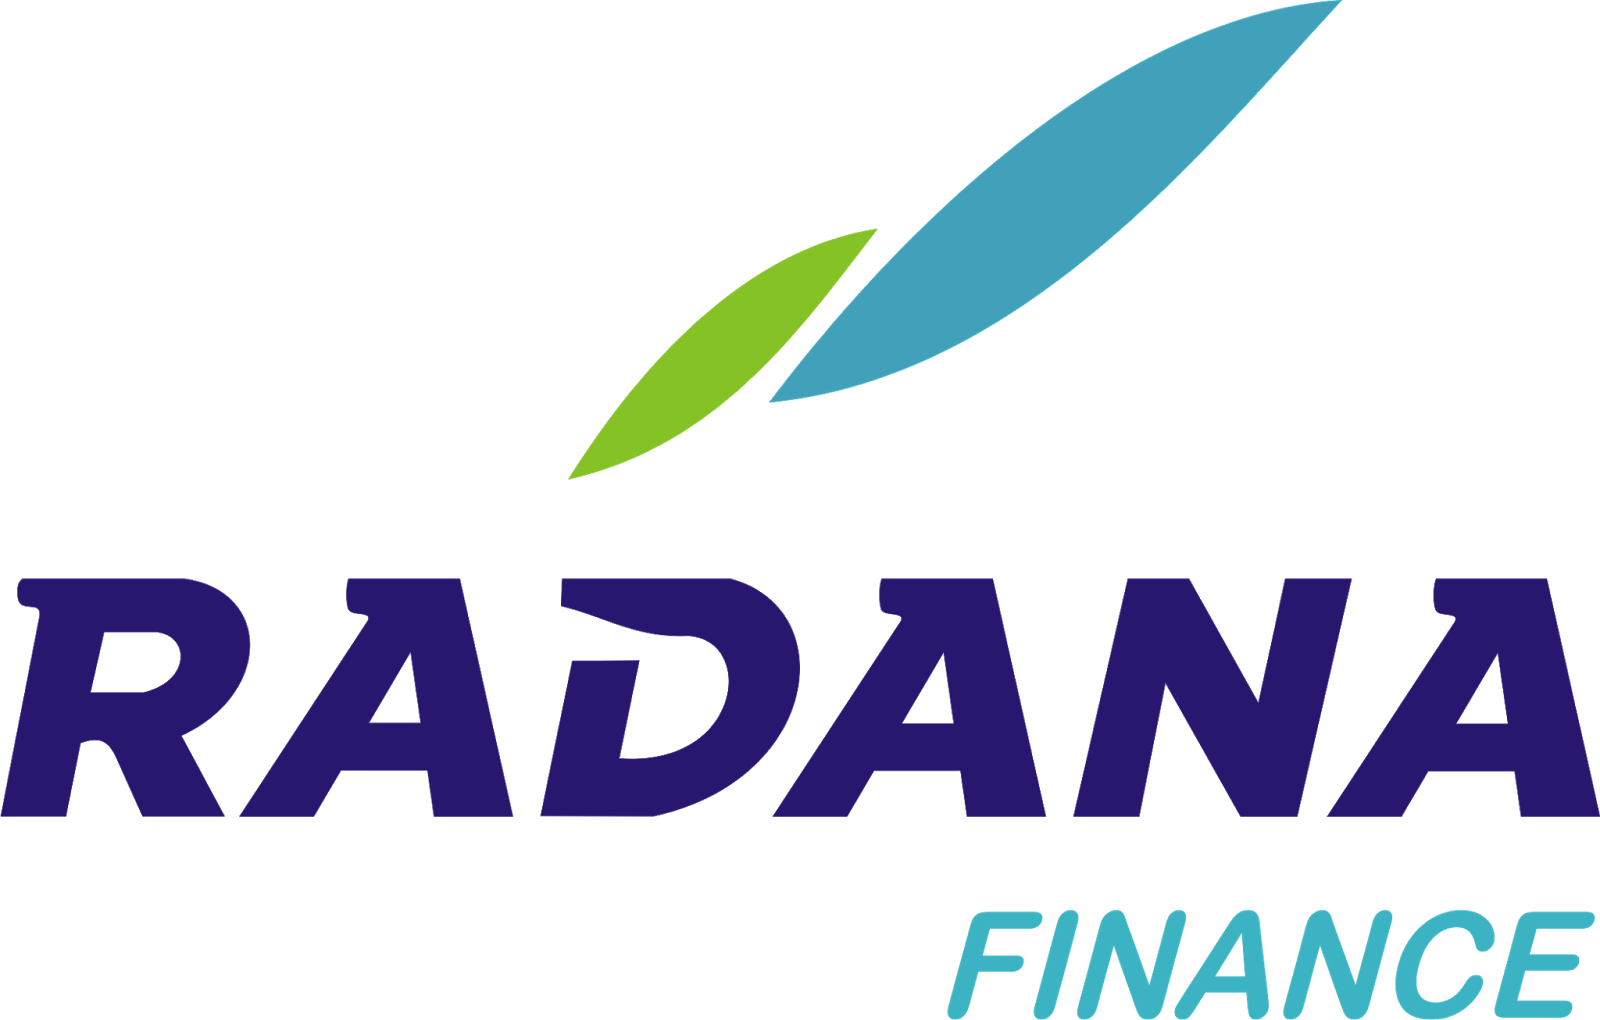 Lowongan D3/S1 PT. Radana Finance Desember 2014 Yogyakarta - ( Marketing Head, Field Surveyor & Colector dll )